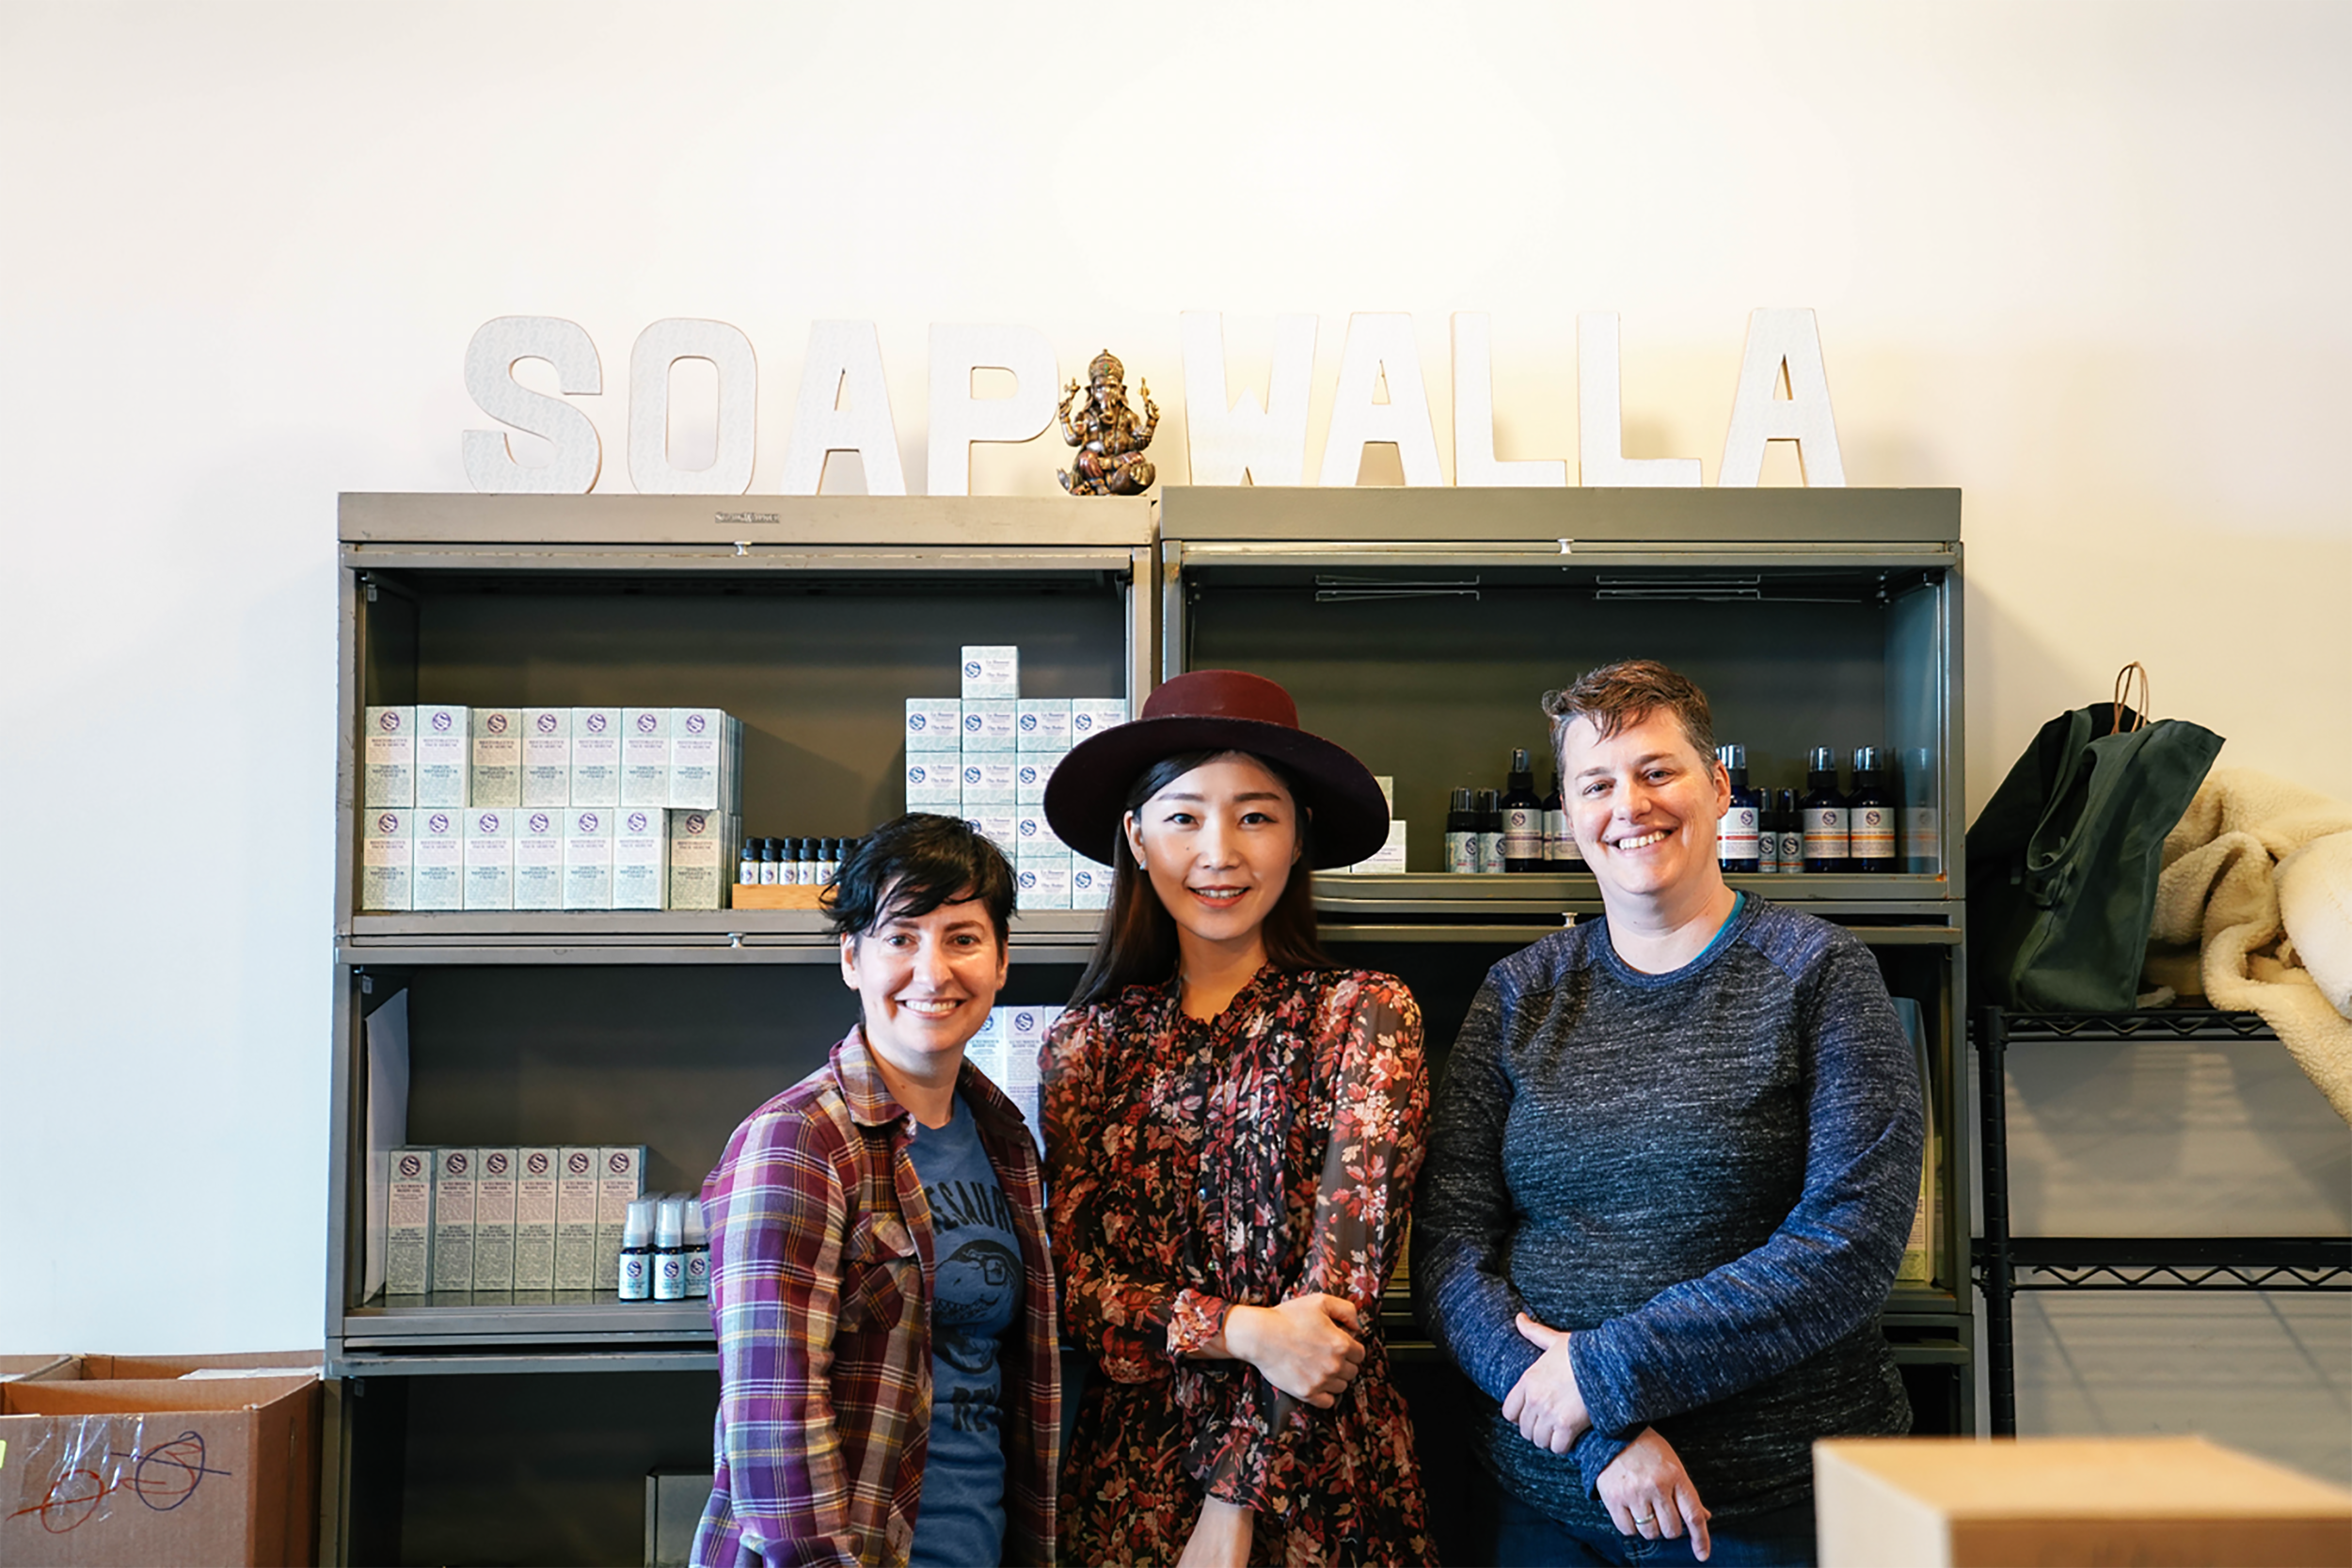 With Rachel and Stacey of Soapwalla. Thanks a ton for great time!